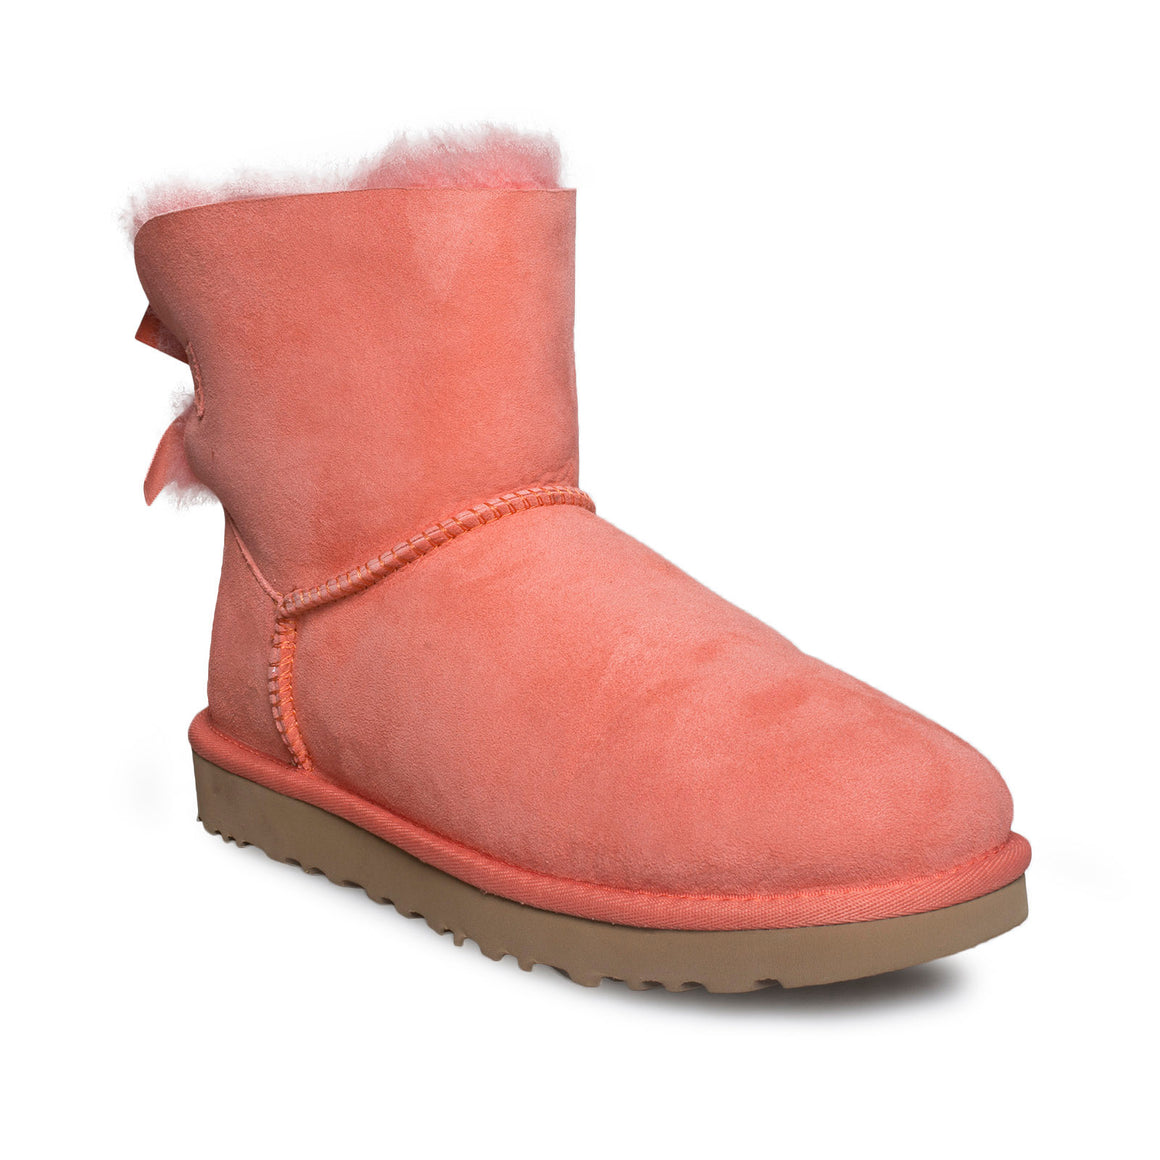 UGG Mini Bailey BOW II Vibrant Coral Boots - Women's